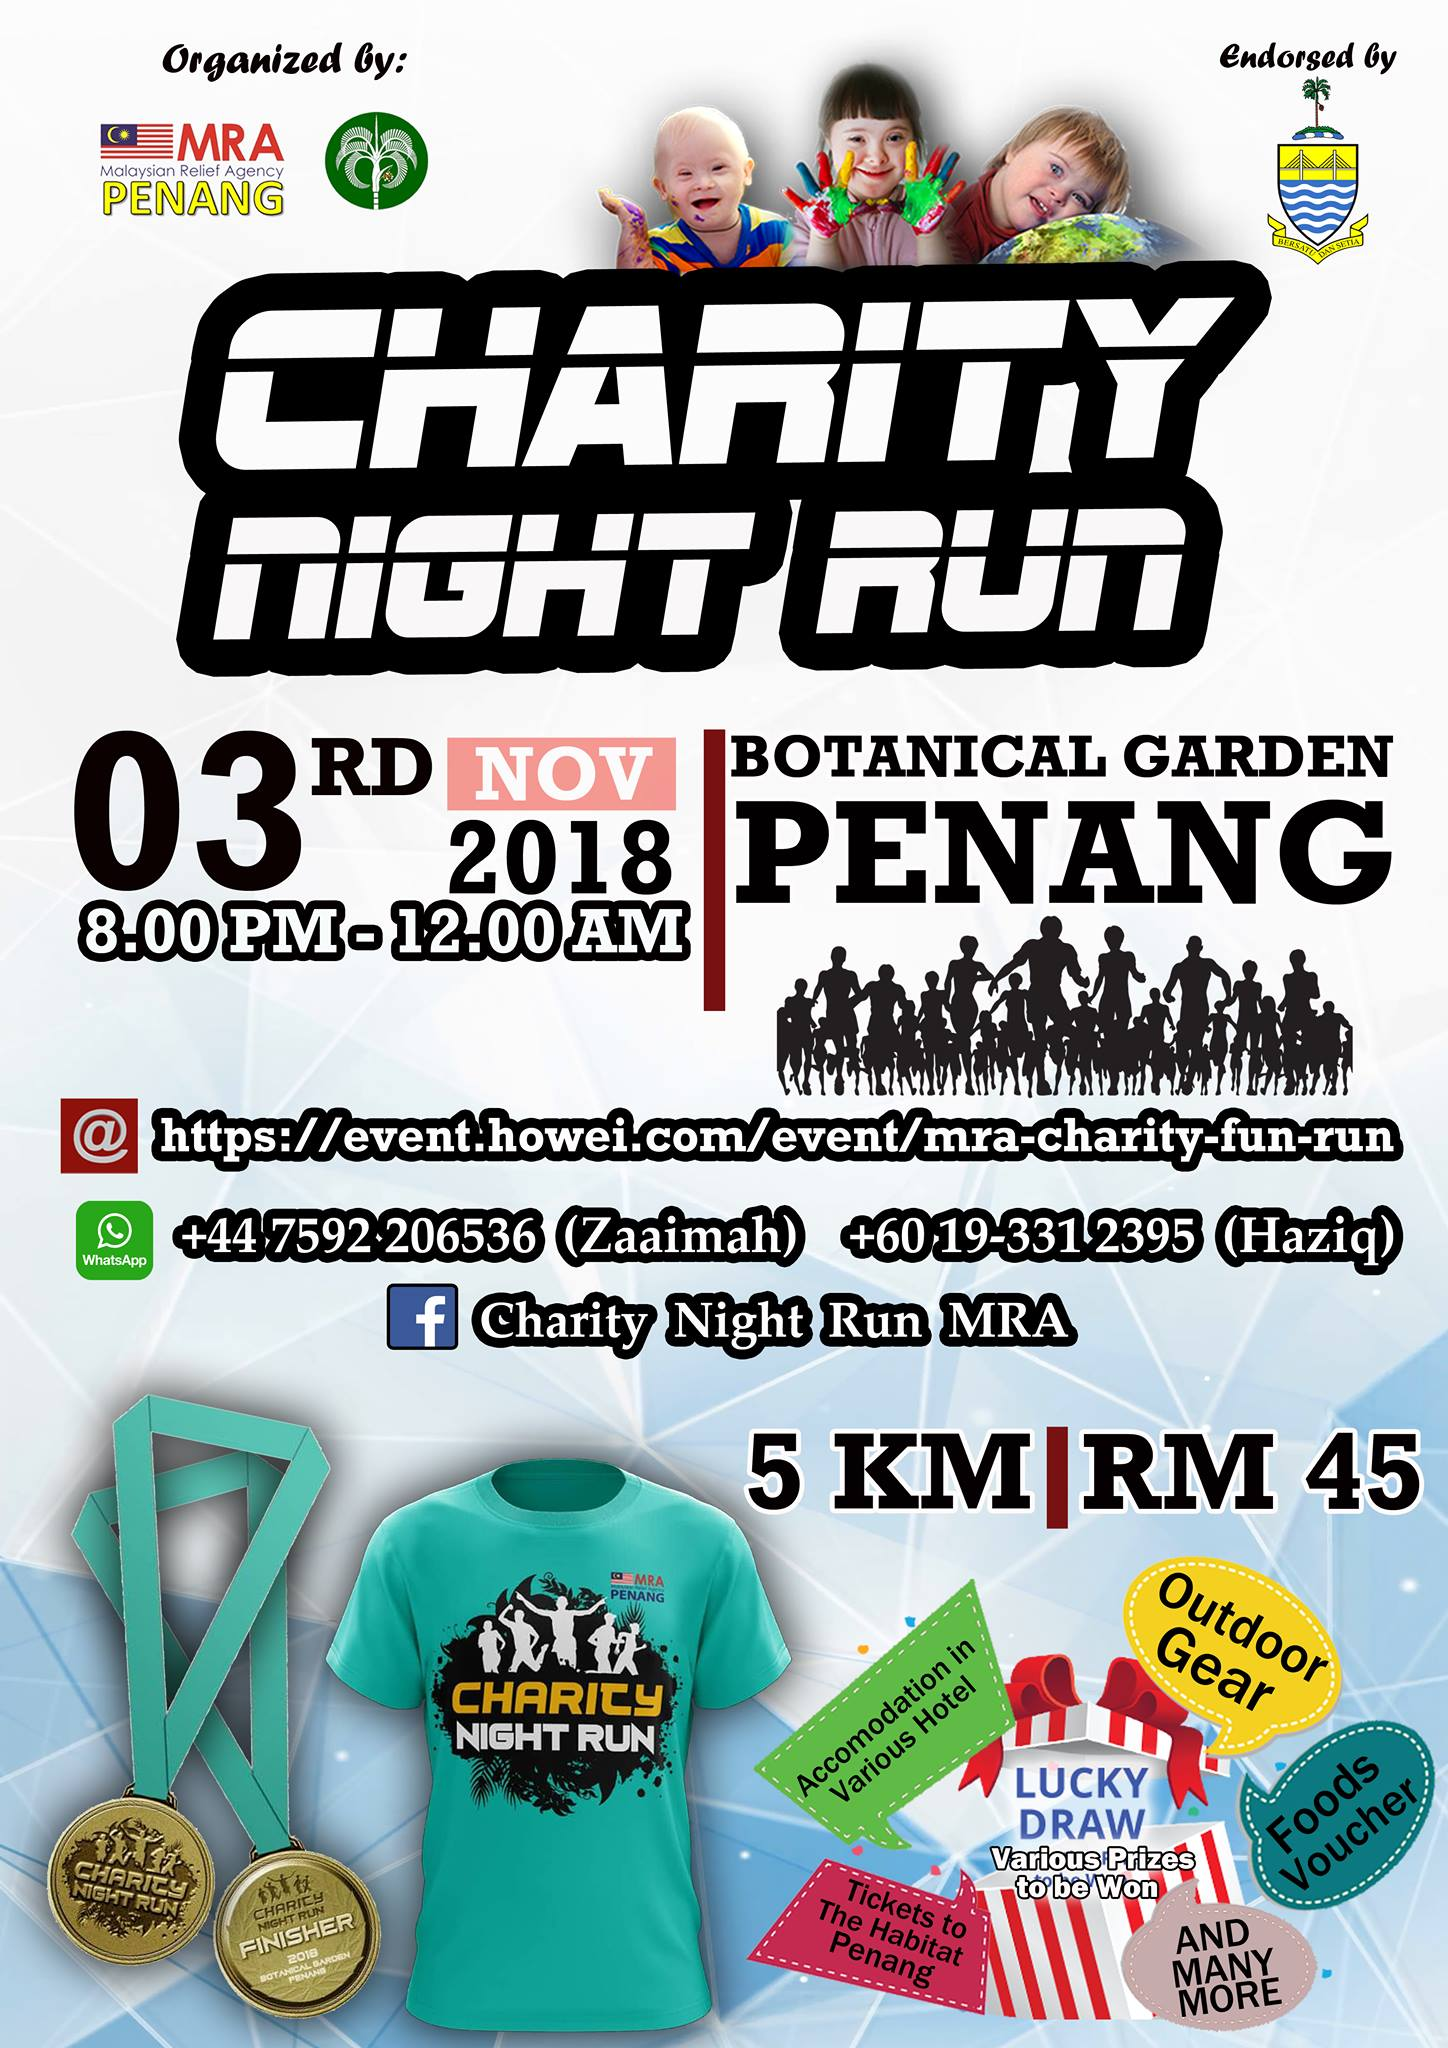 Charity Night Run MRA Penang 2018